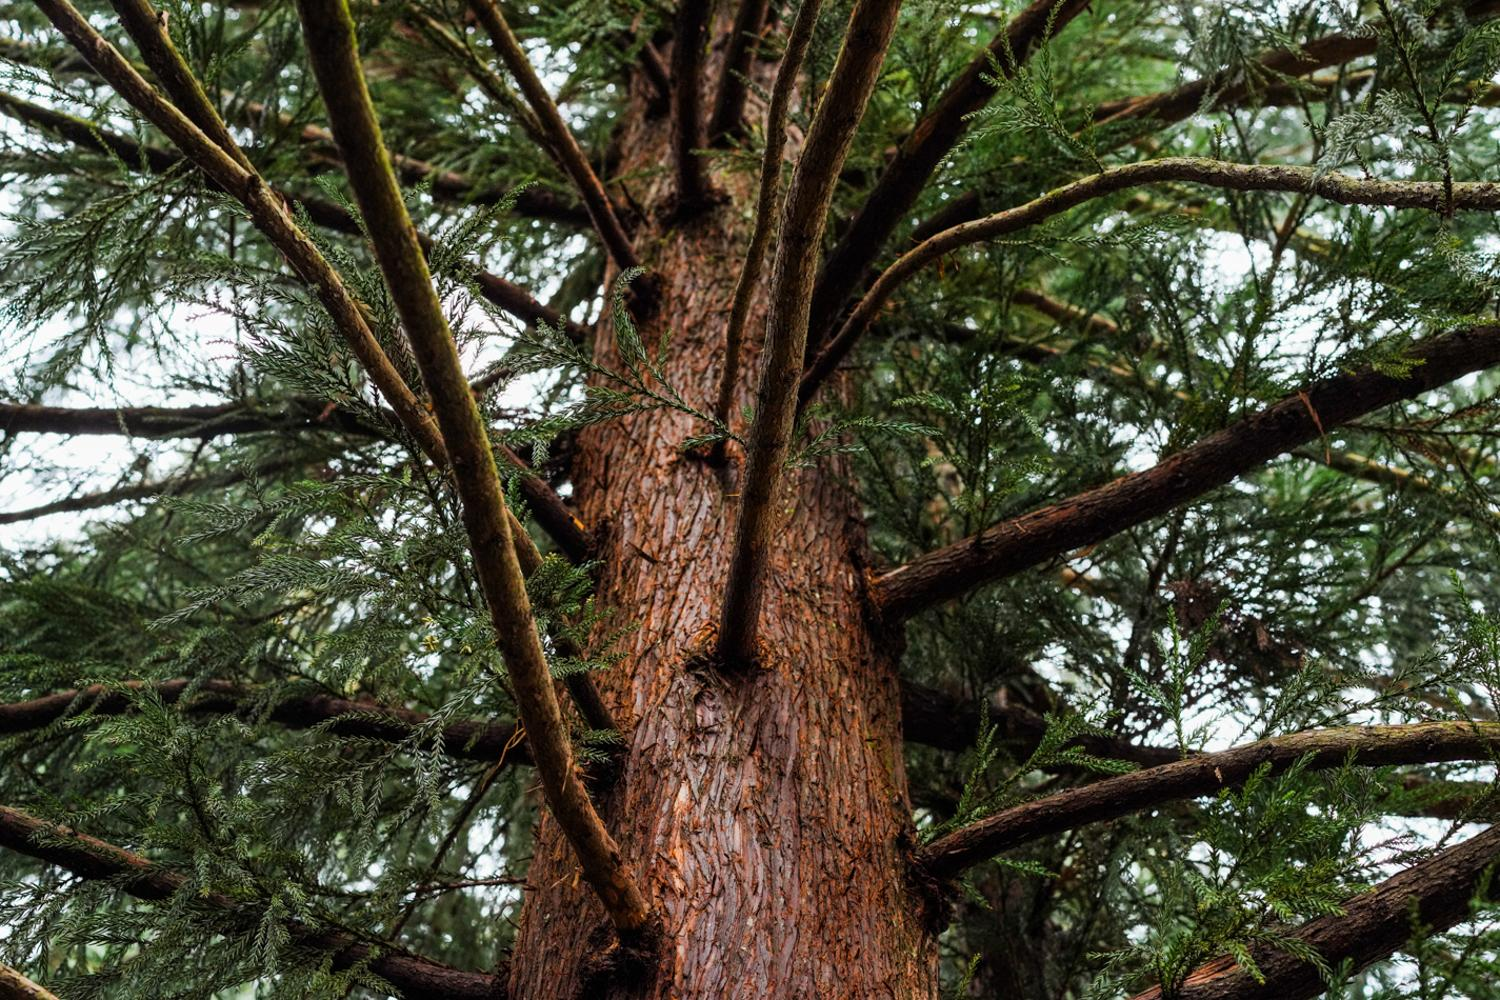 A native coniferous tree that grows on the campus of Sweet Briar College in Central Virginia, 2020.